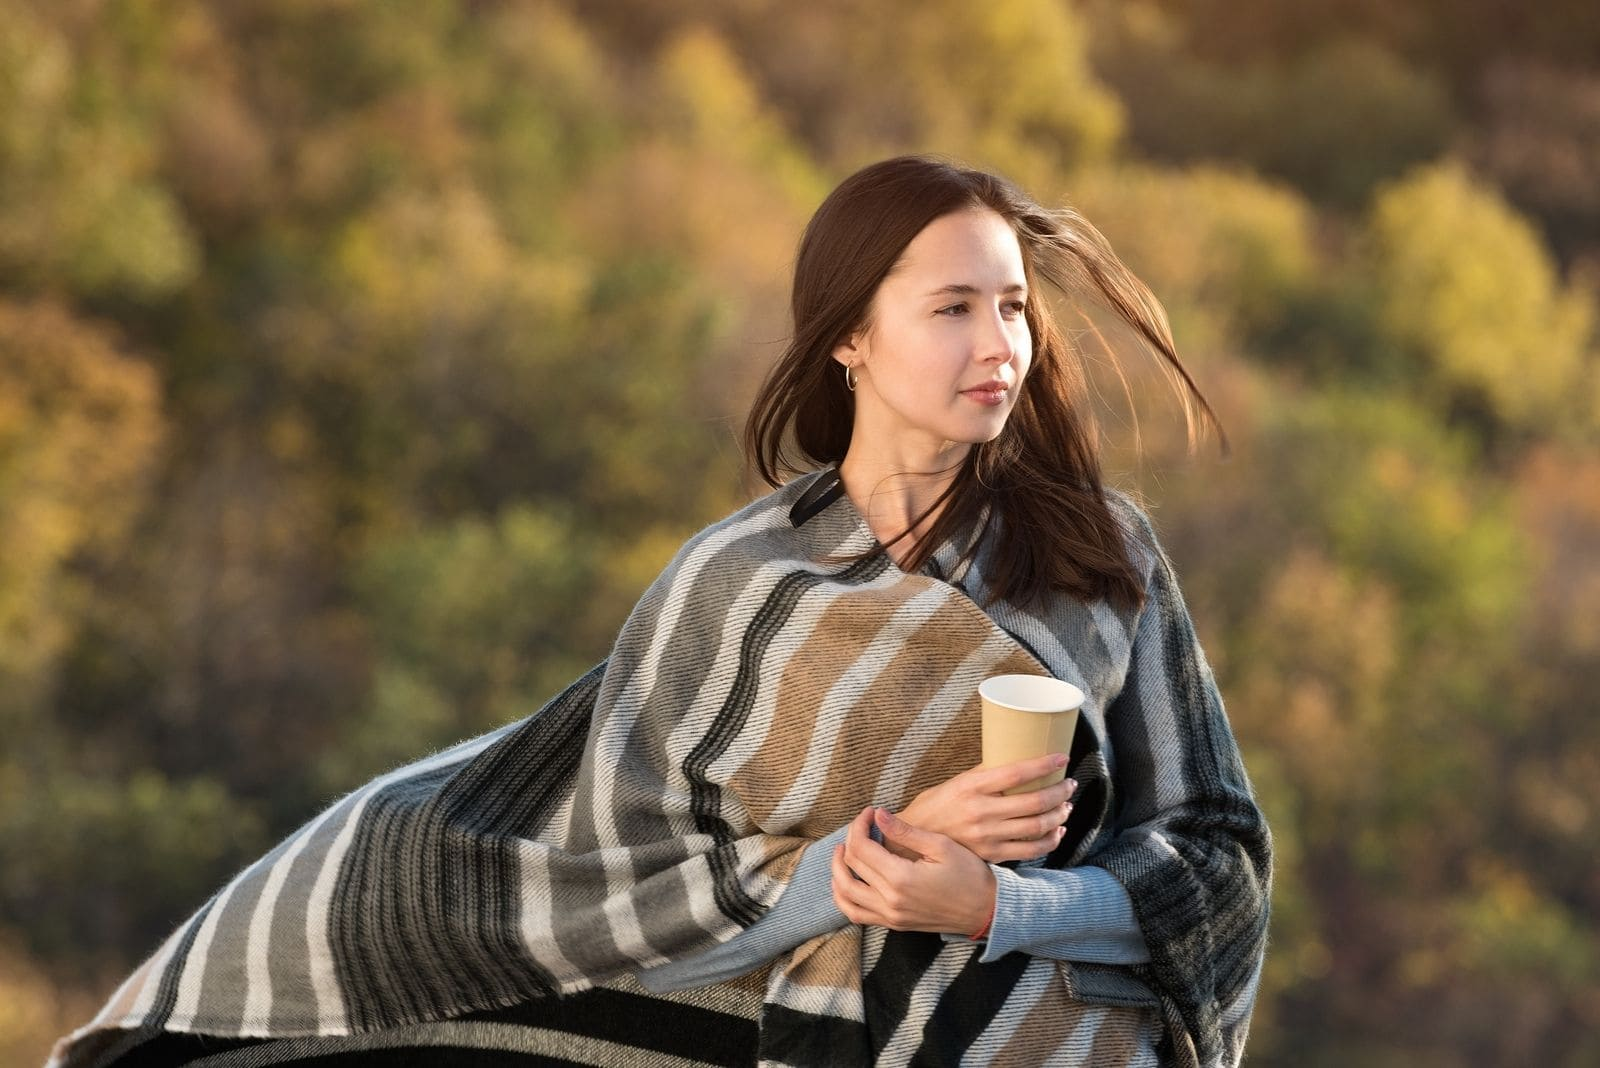 woman wrapped with blanket walking outdoors carrying coffee in paper cup